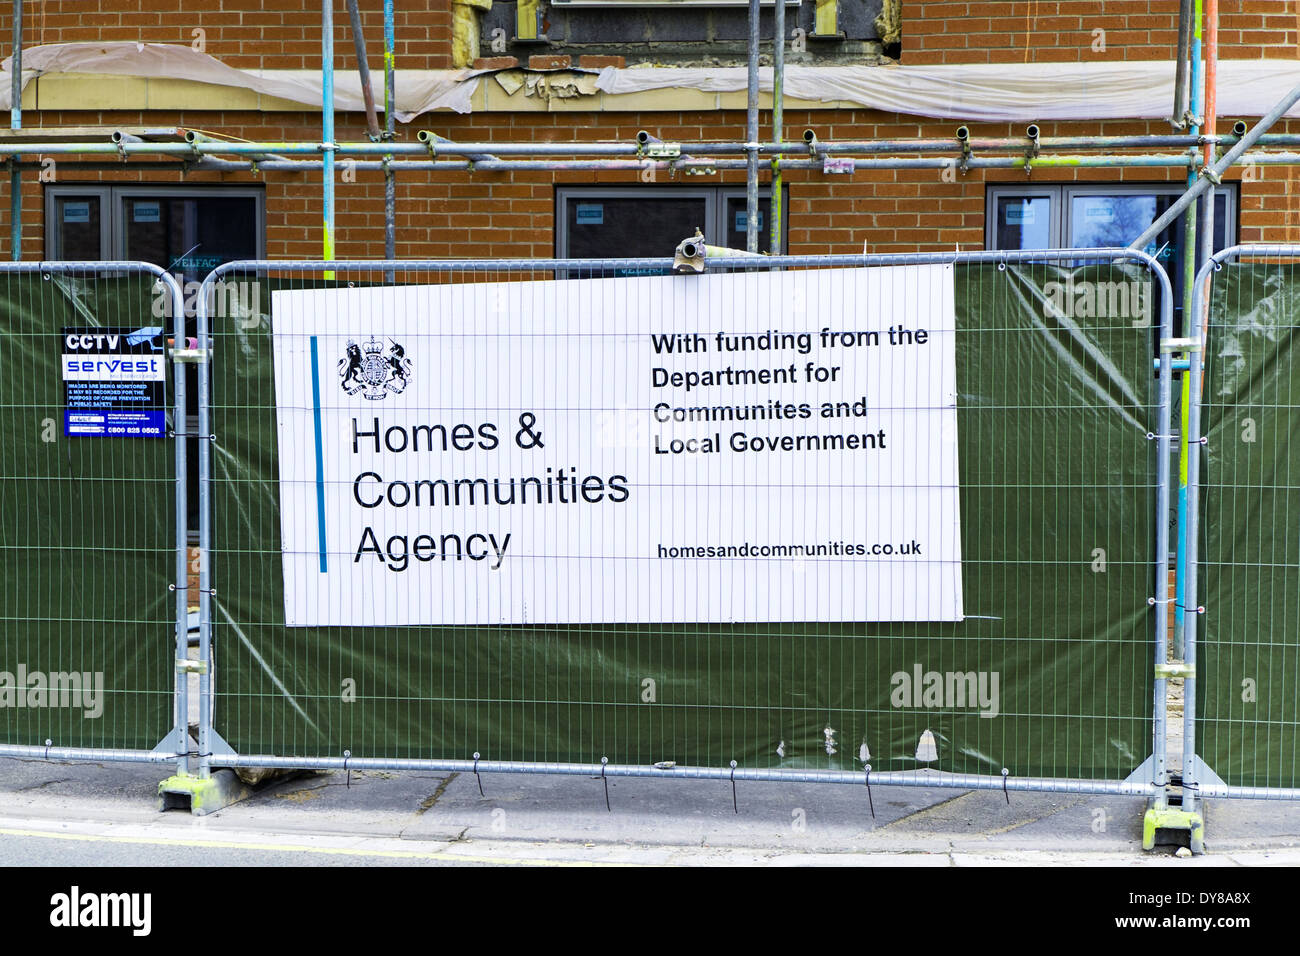 Homes and communities agency sign funding from local government department Lincoln City Lincolnshire UK GB England - Stock Image